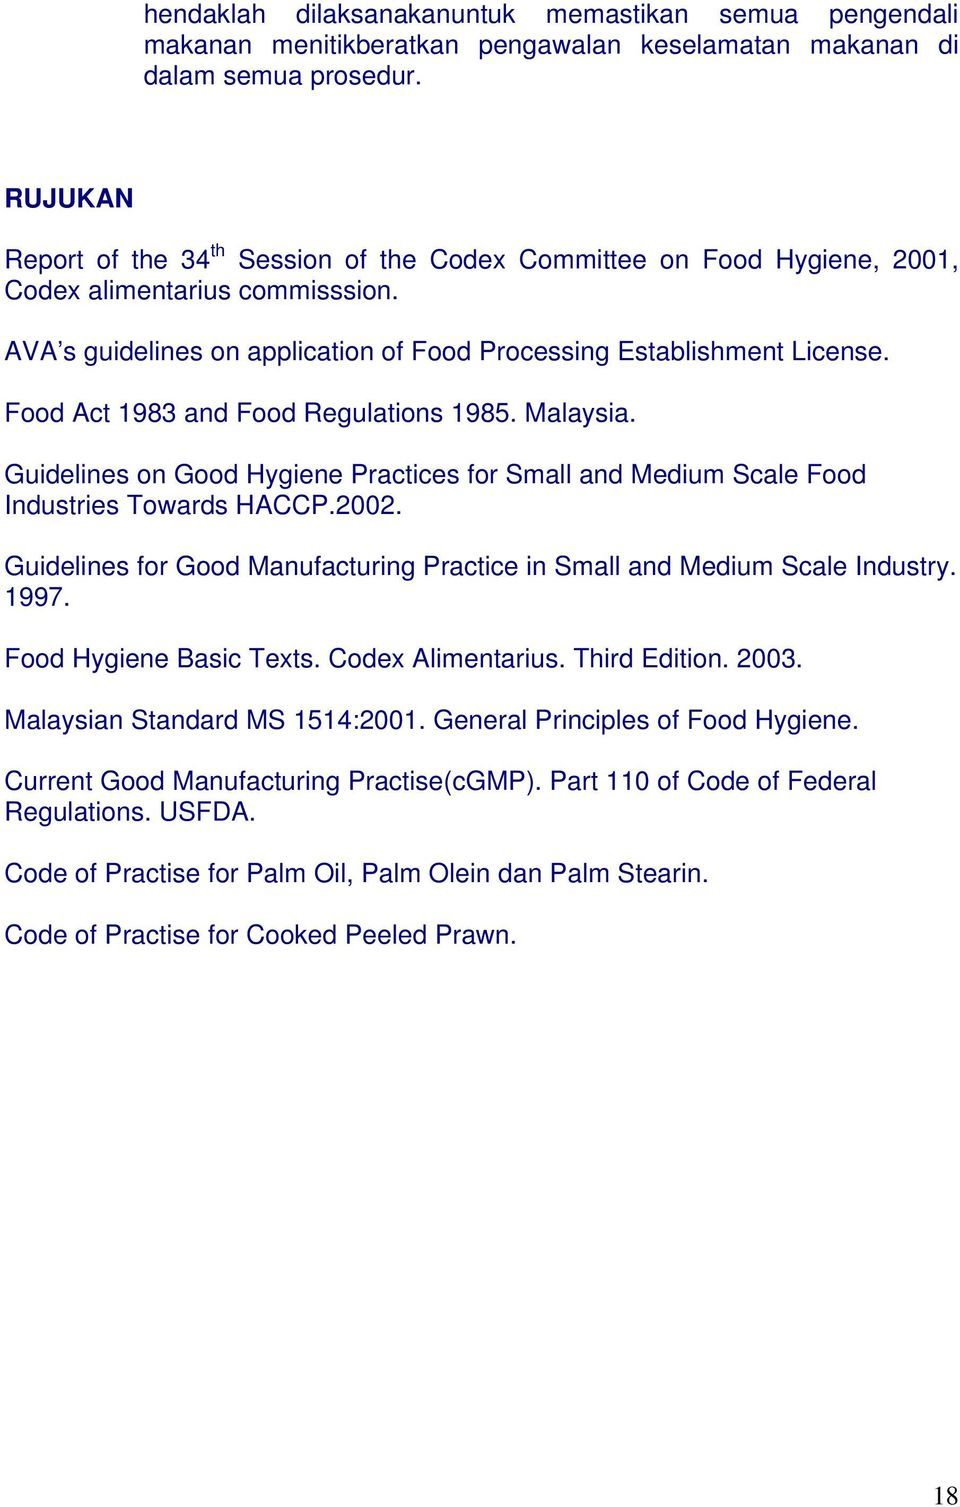 Food Act 1983 and Food Regulations 1985. Malaysia. Guidelines on Good Hygiene Practices for Small and Medium Scale Food Industries Towards HACCP.2002.